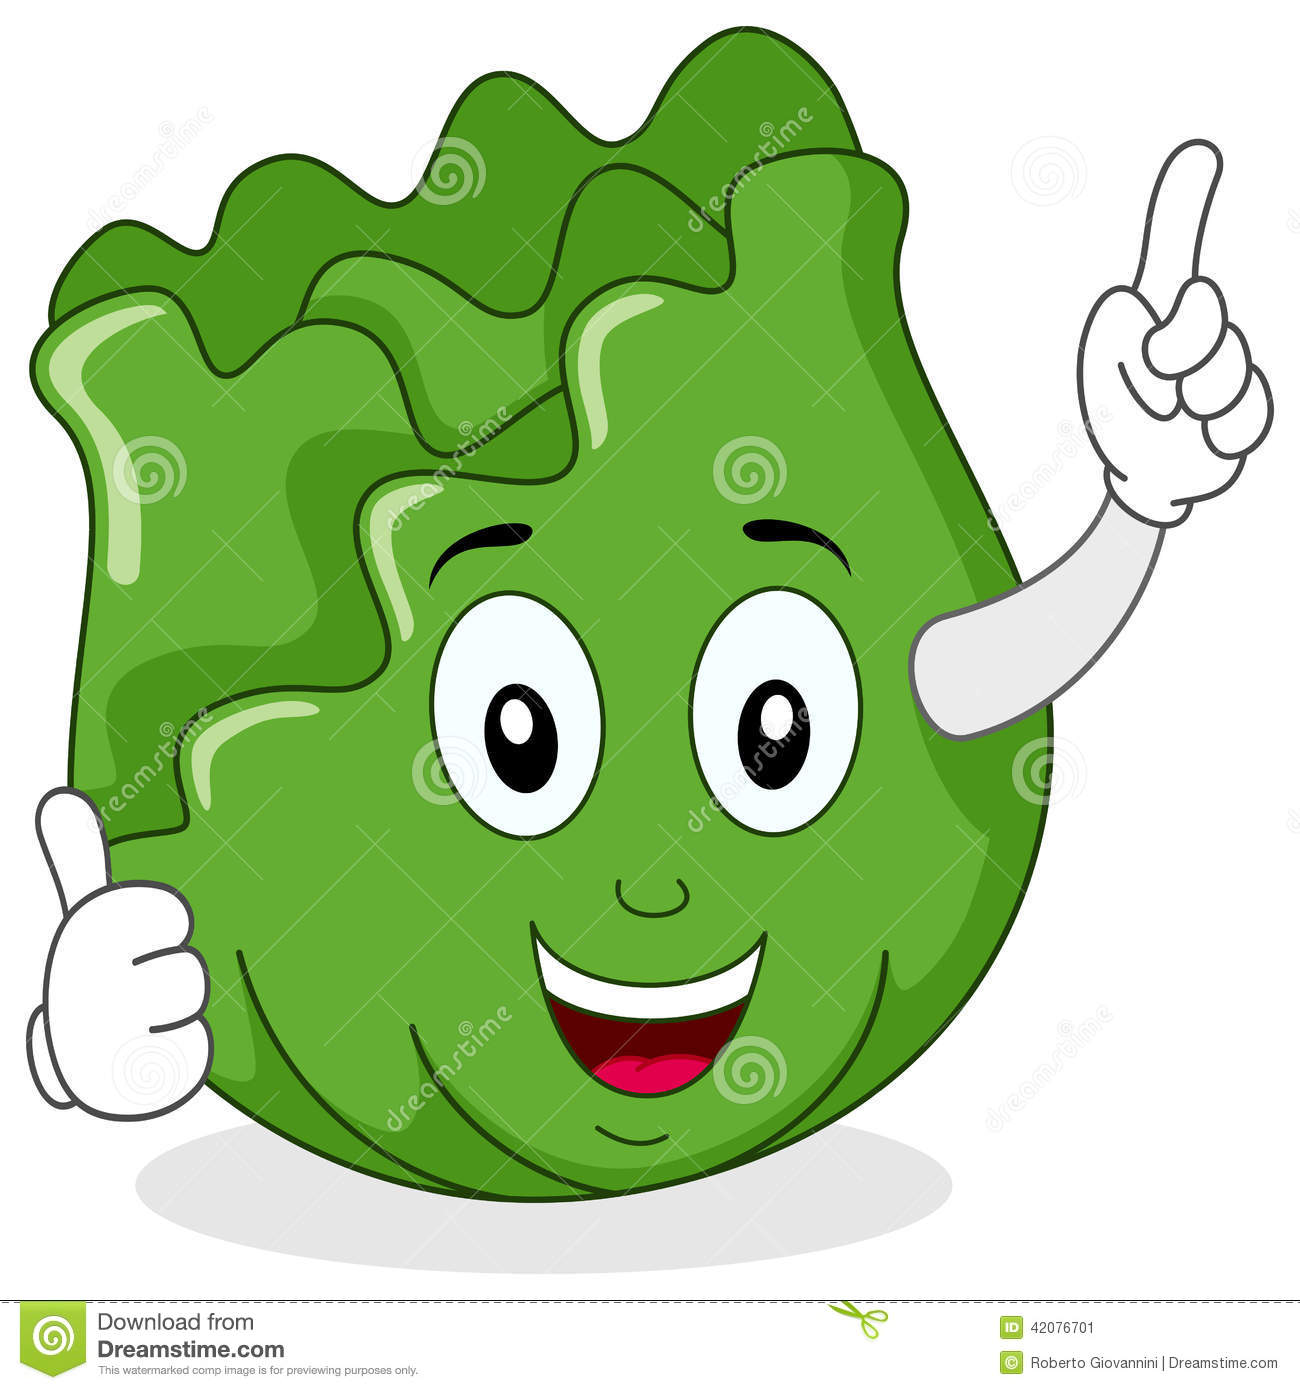 Cartoon Cabbage Images - Reverse Search